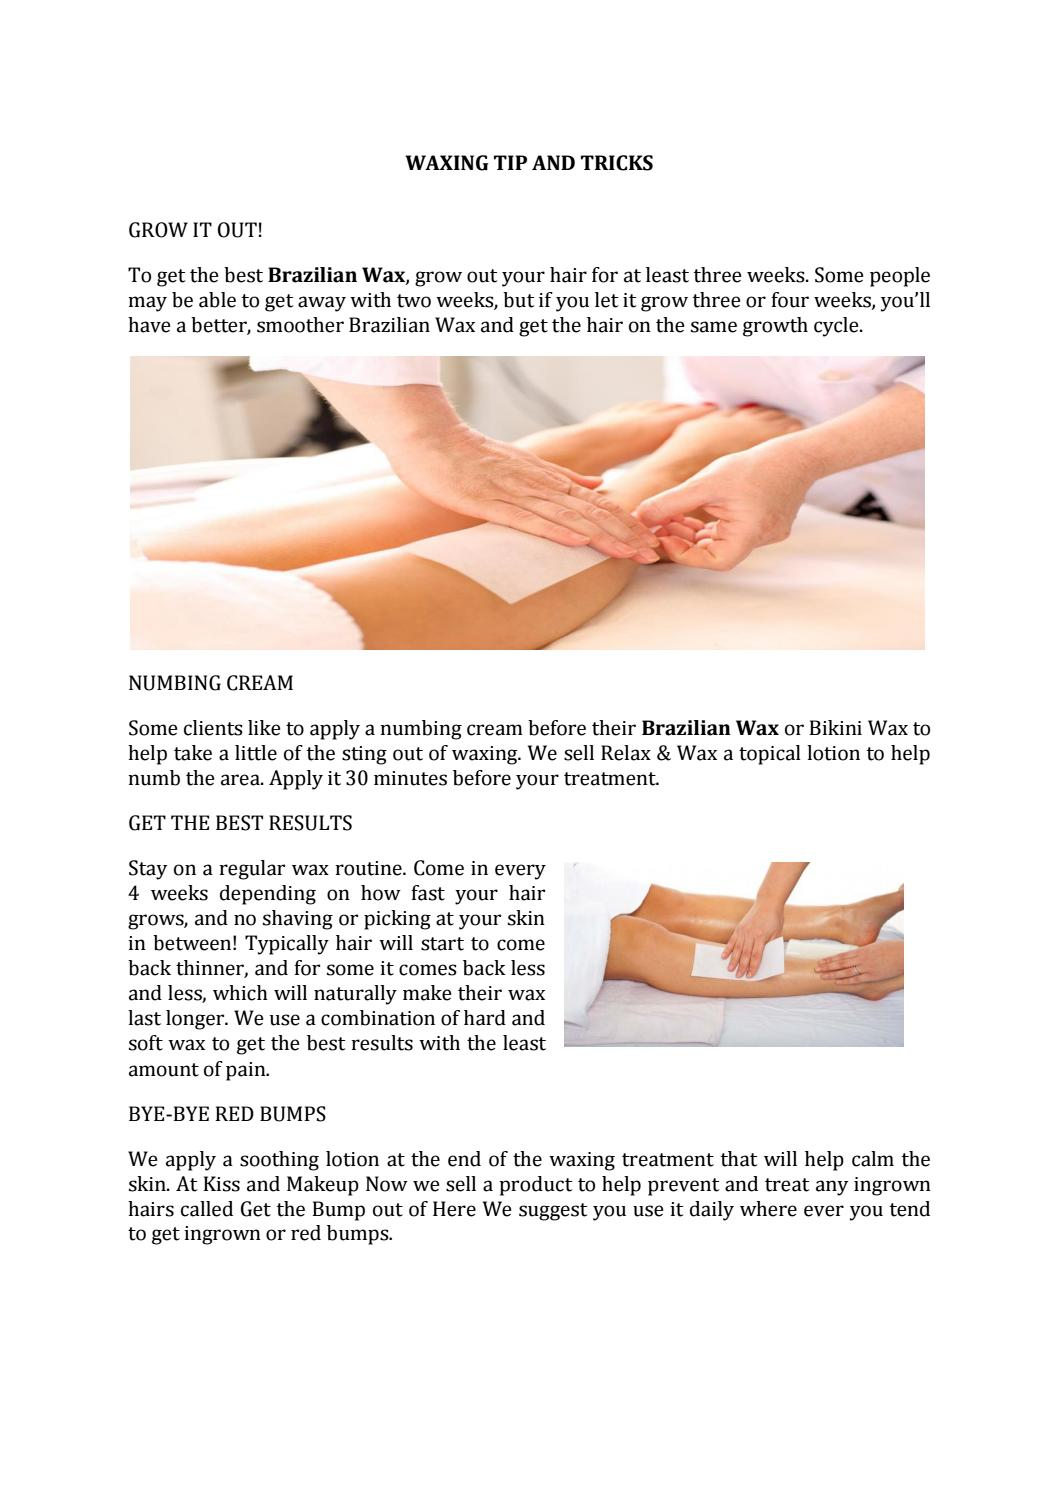 WAXING TIP AND TRICKS by kissand makeup - issuu